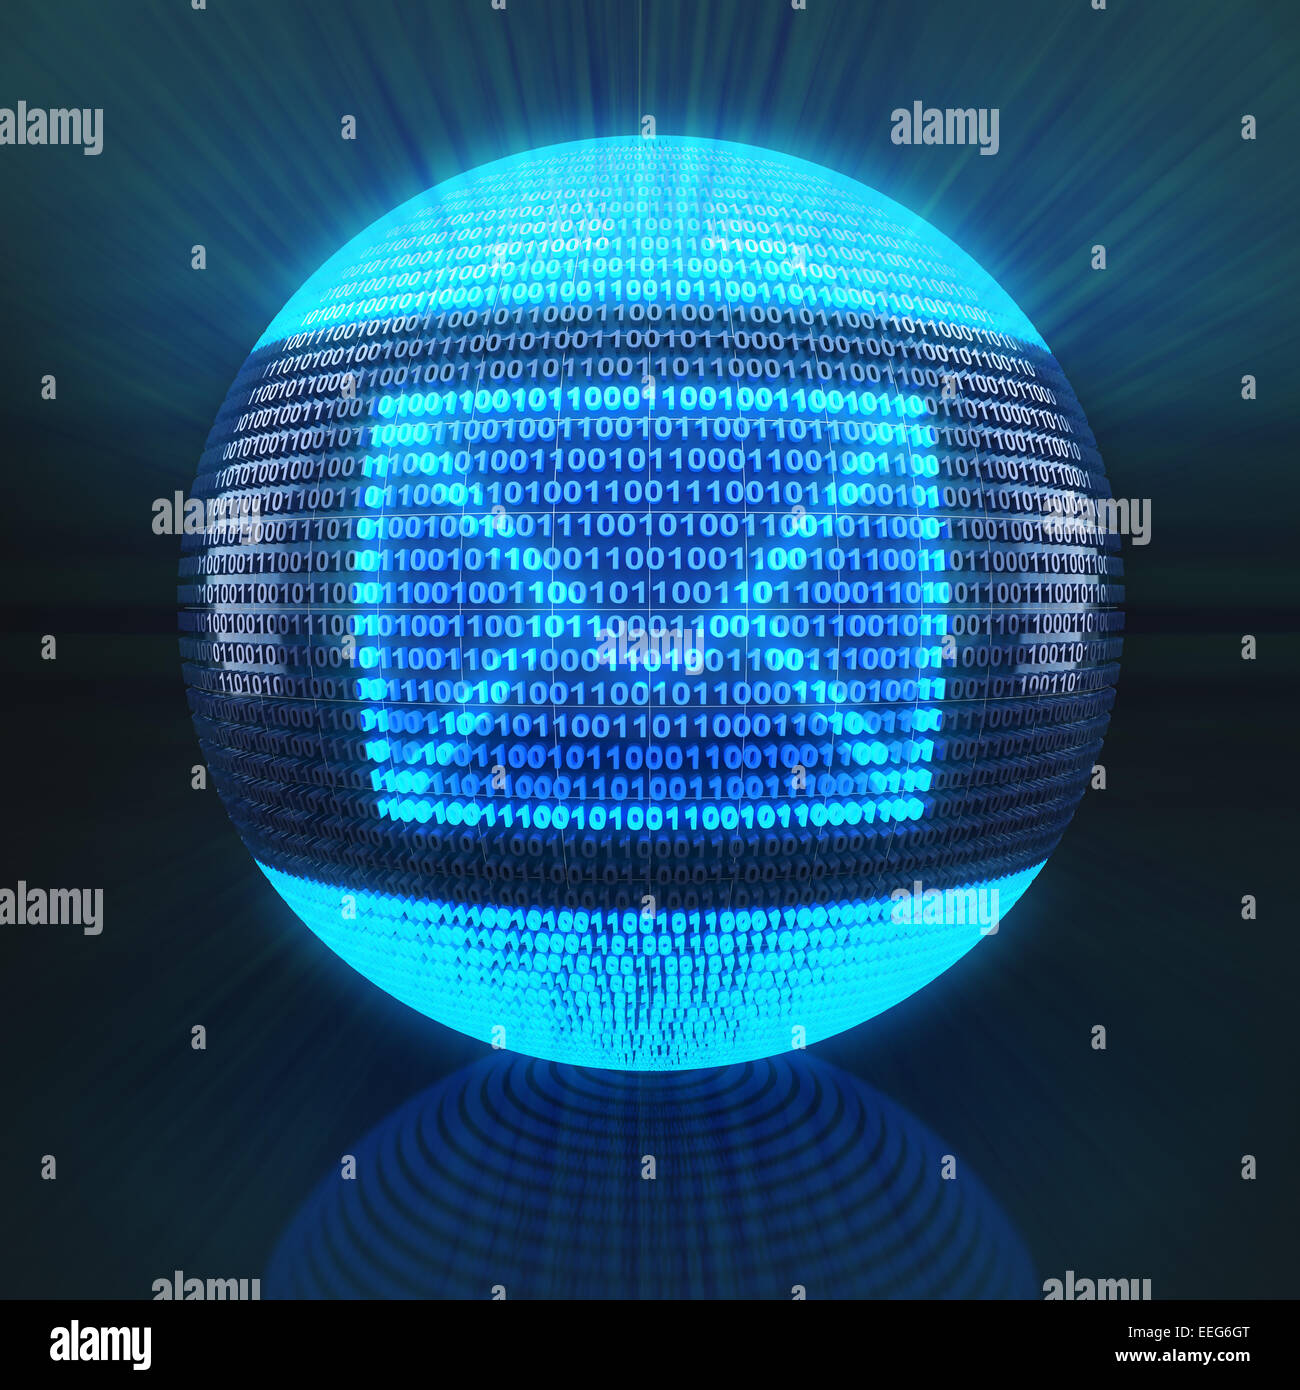 Email symbol on globe formed by binary code - Stock Image